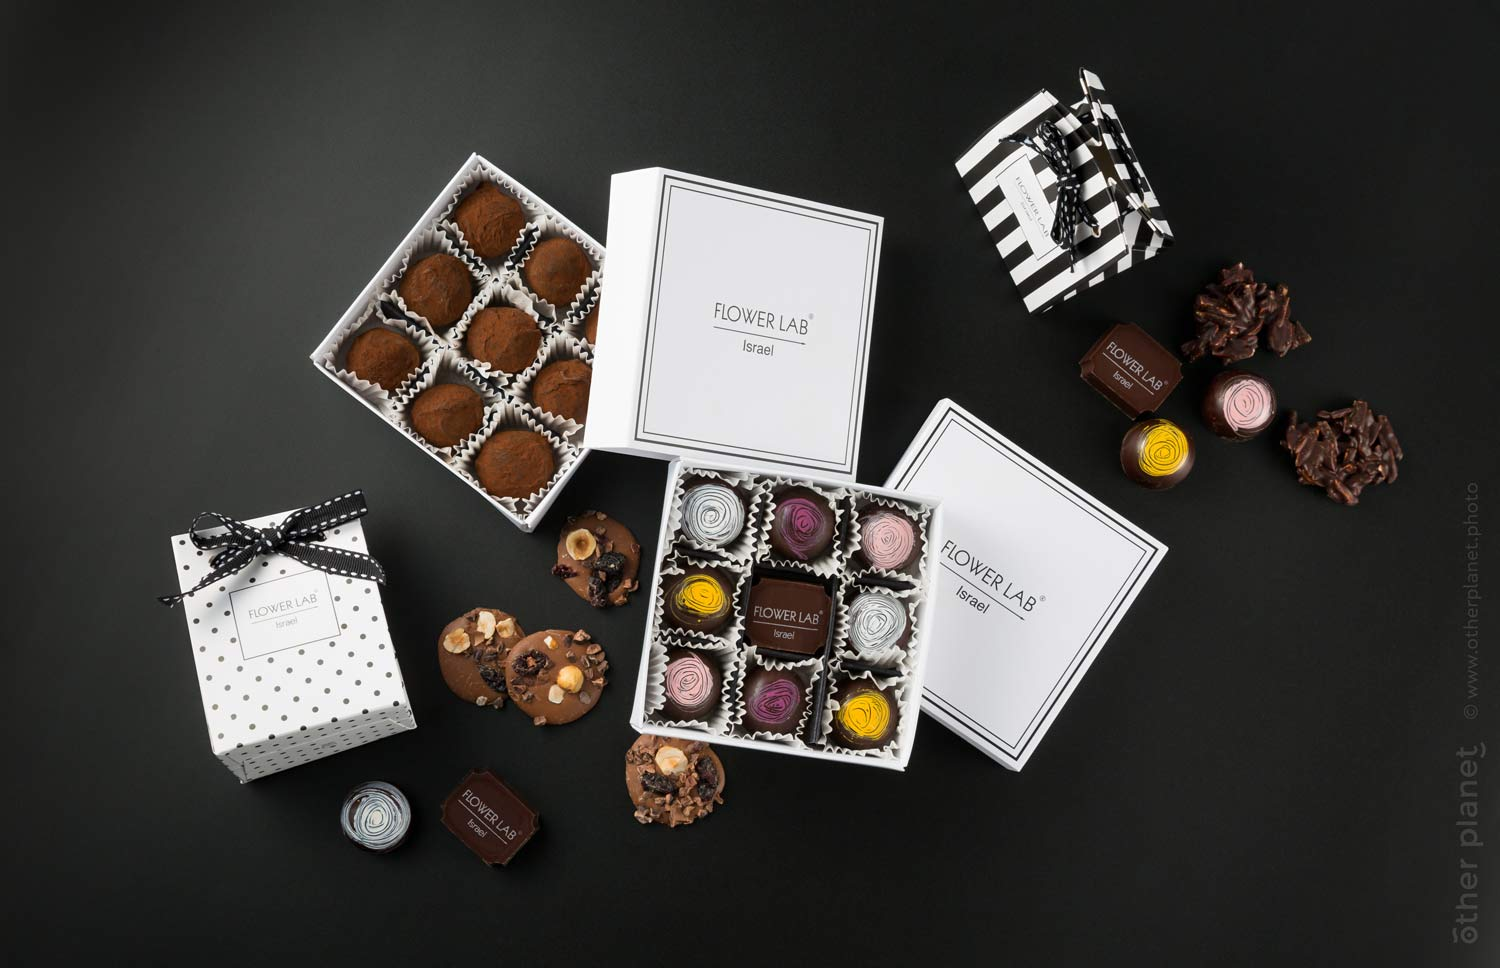 Chocolate sweets and packages branded with Flowerlab logo on black background